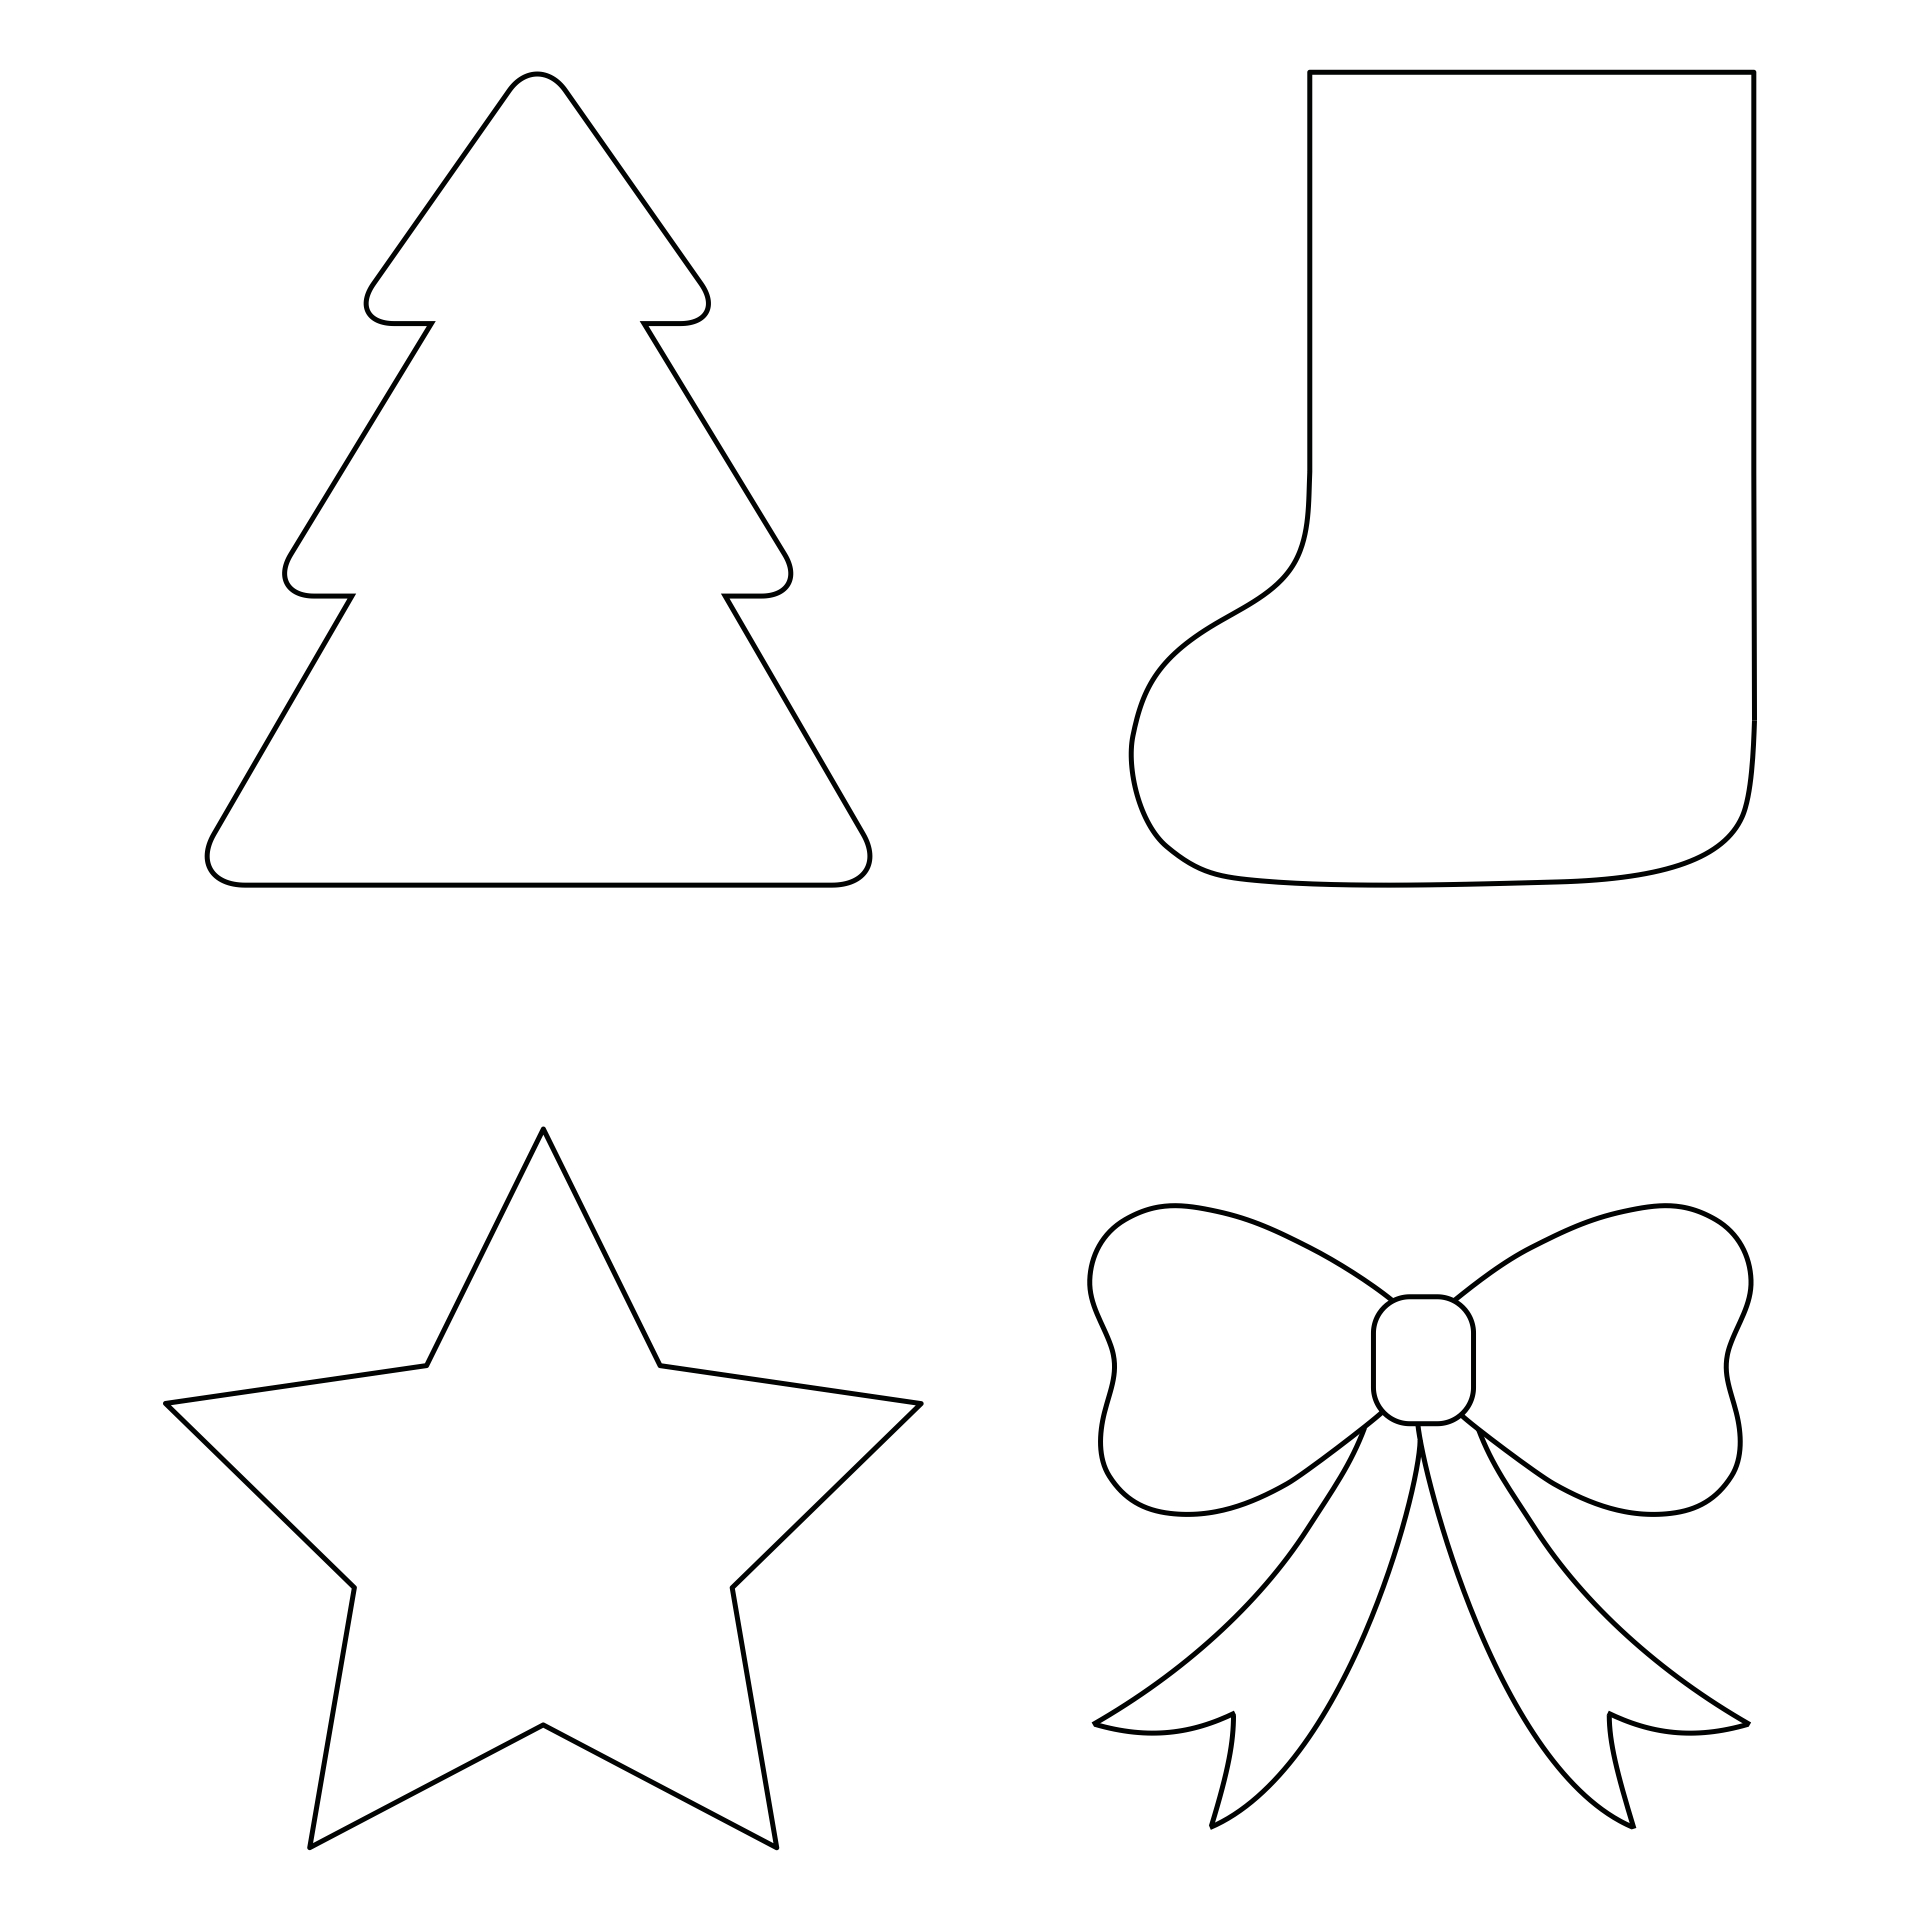 7 Images of Free Printable Christmas Ornament Shapes